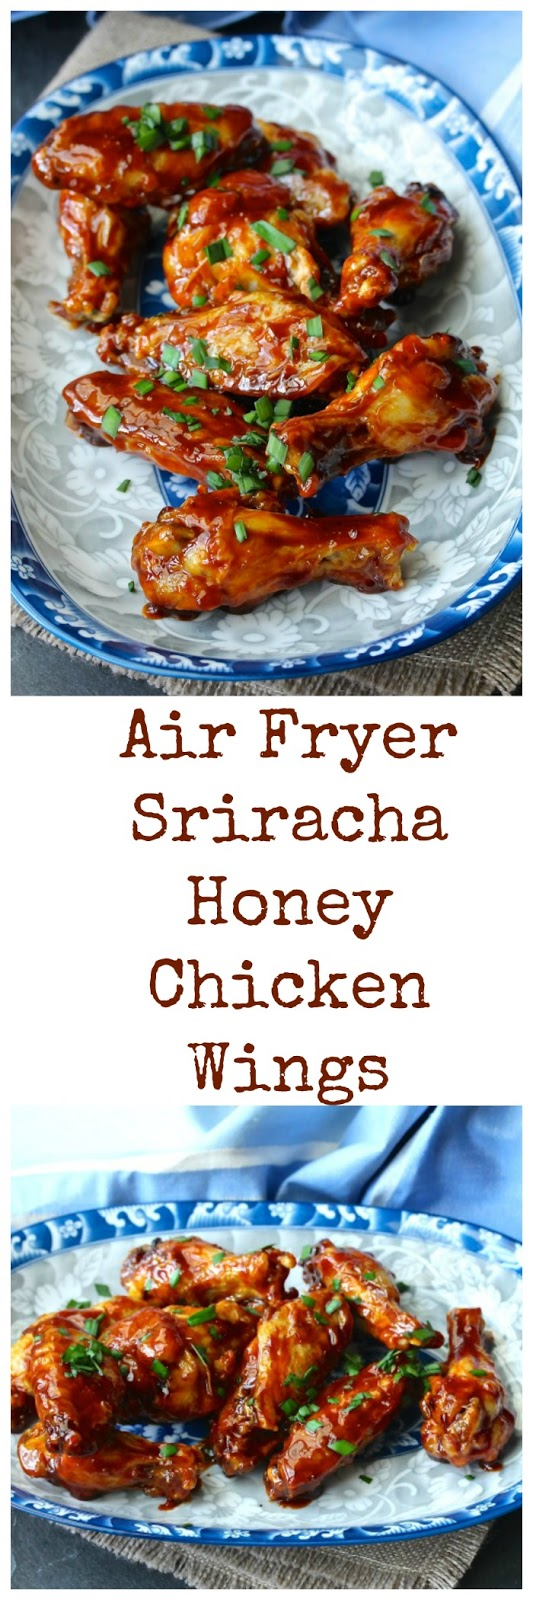 Air Fryer Sriracha-Honey Chicken Wings